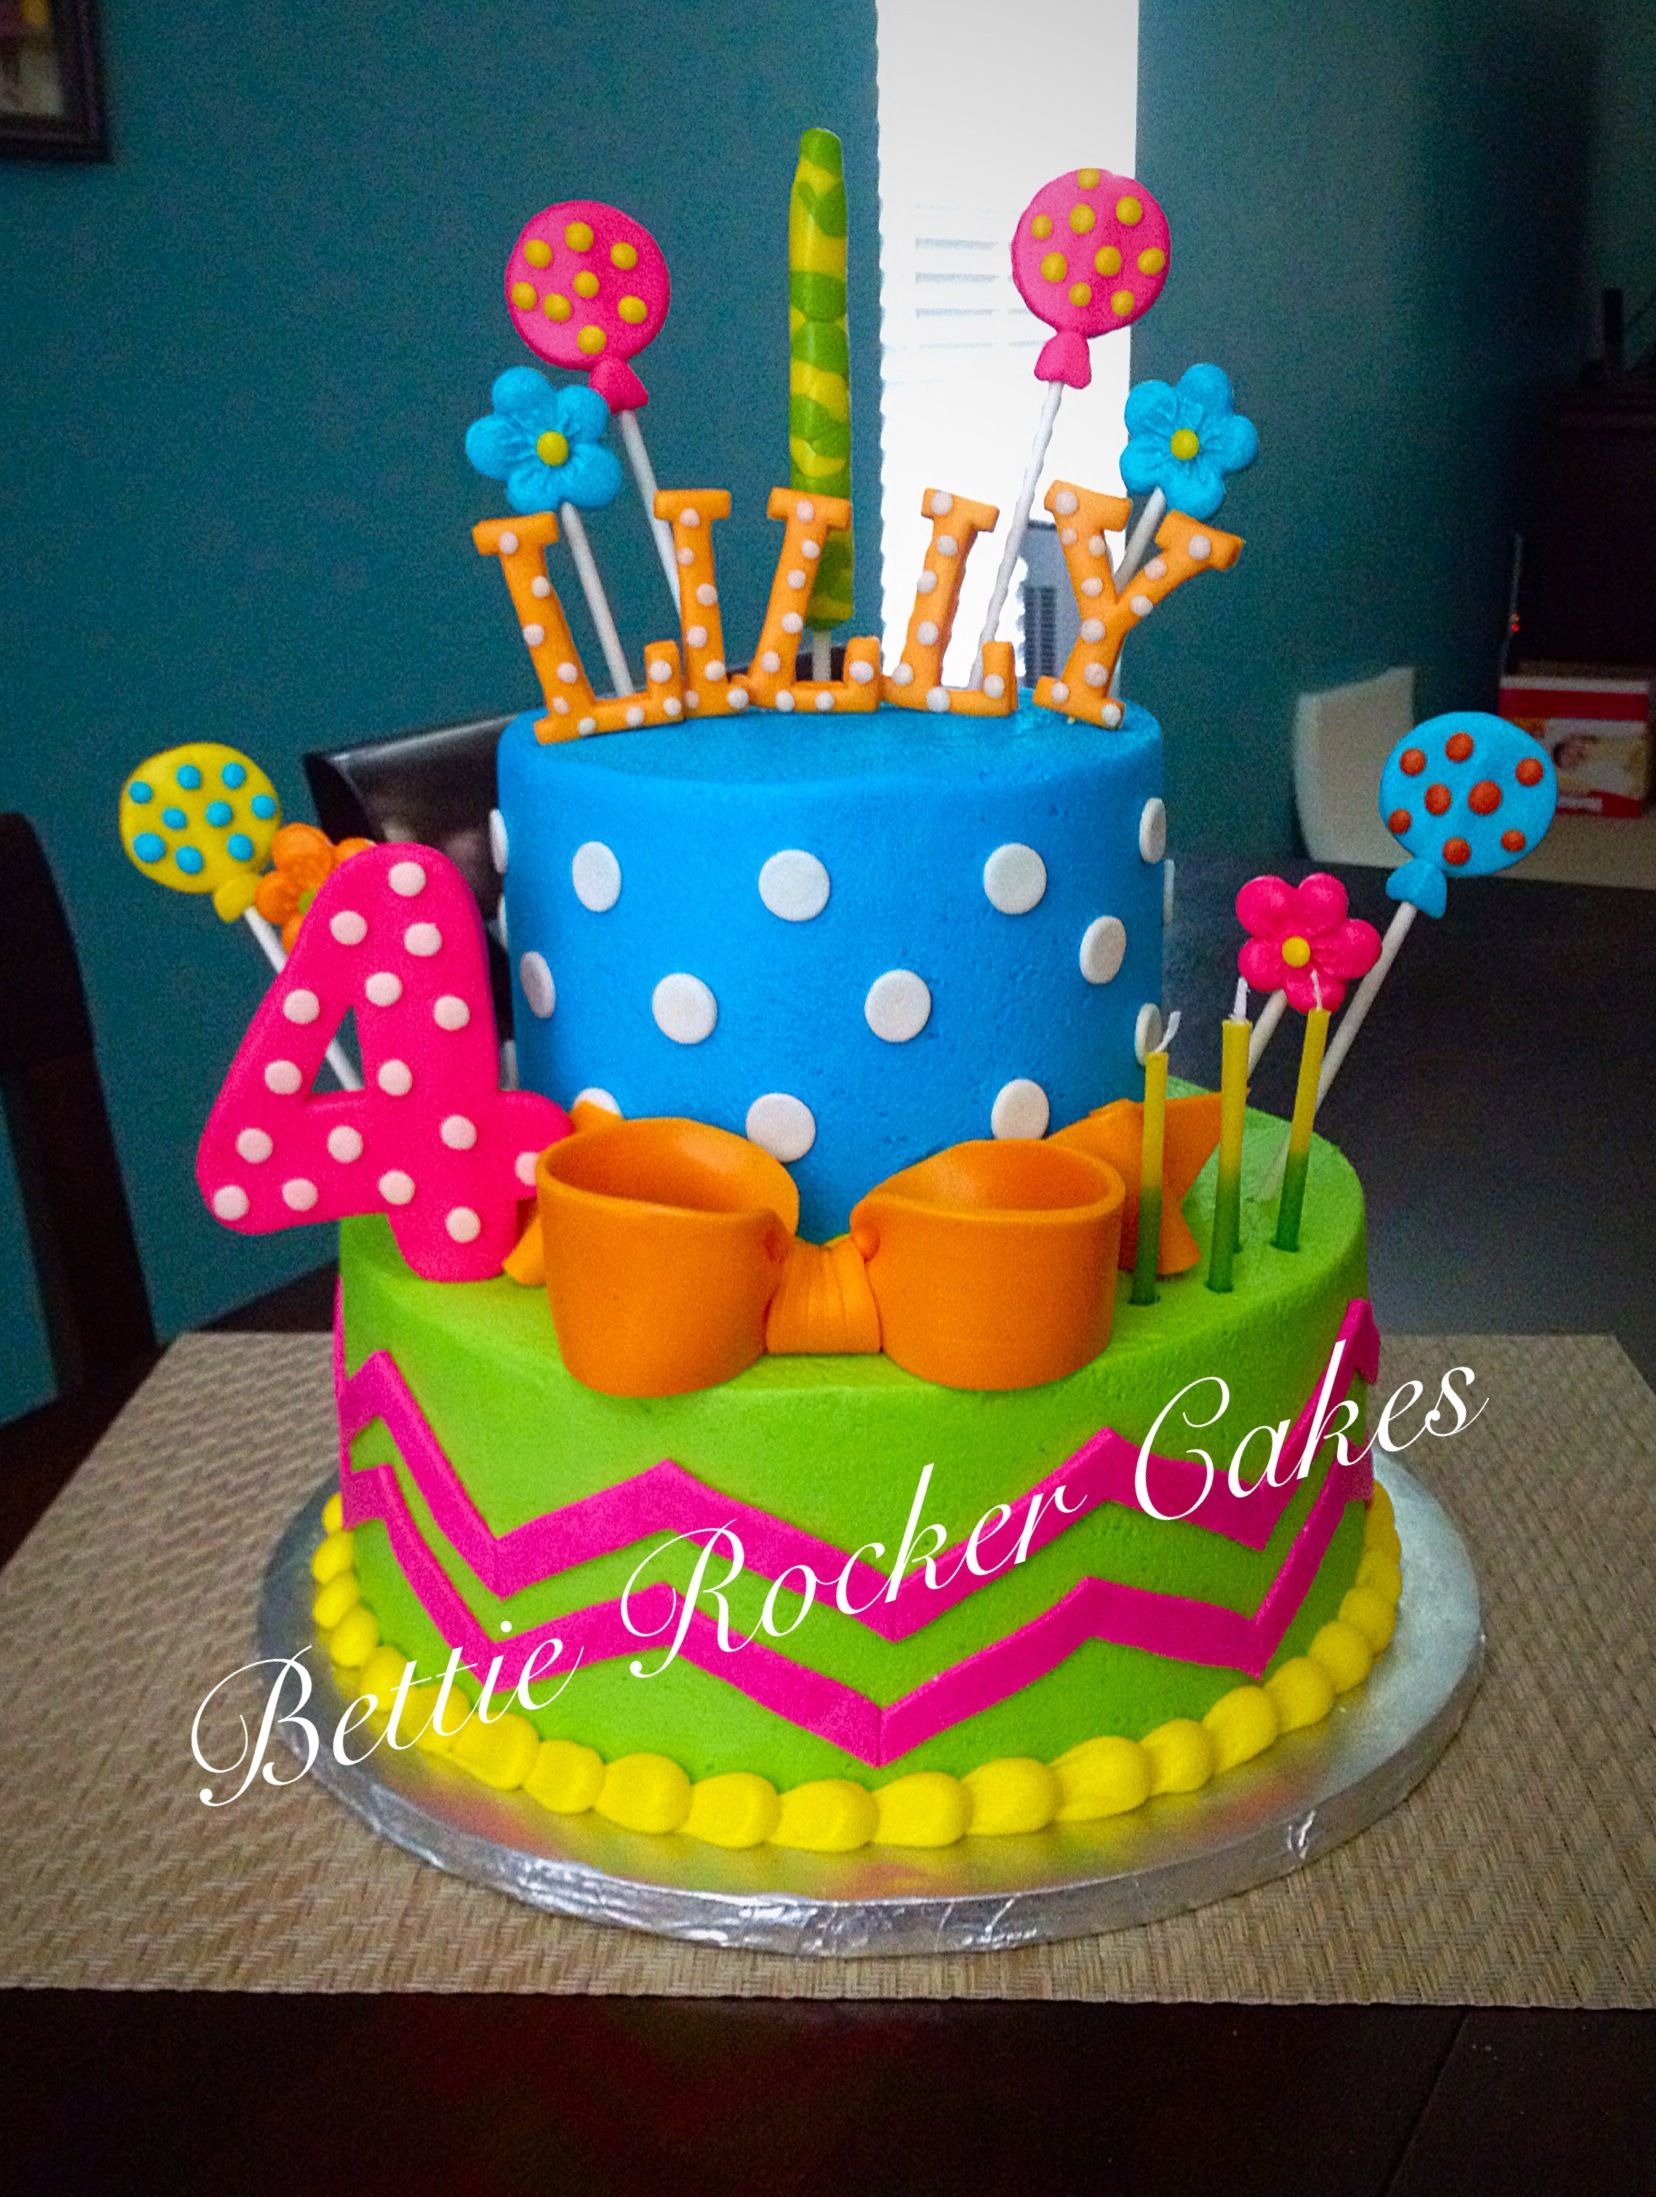 Girly Colorful Bright Birthday Cake Girls teen polka dot chevron